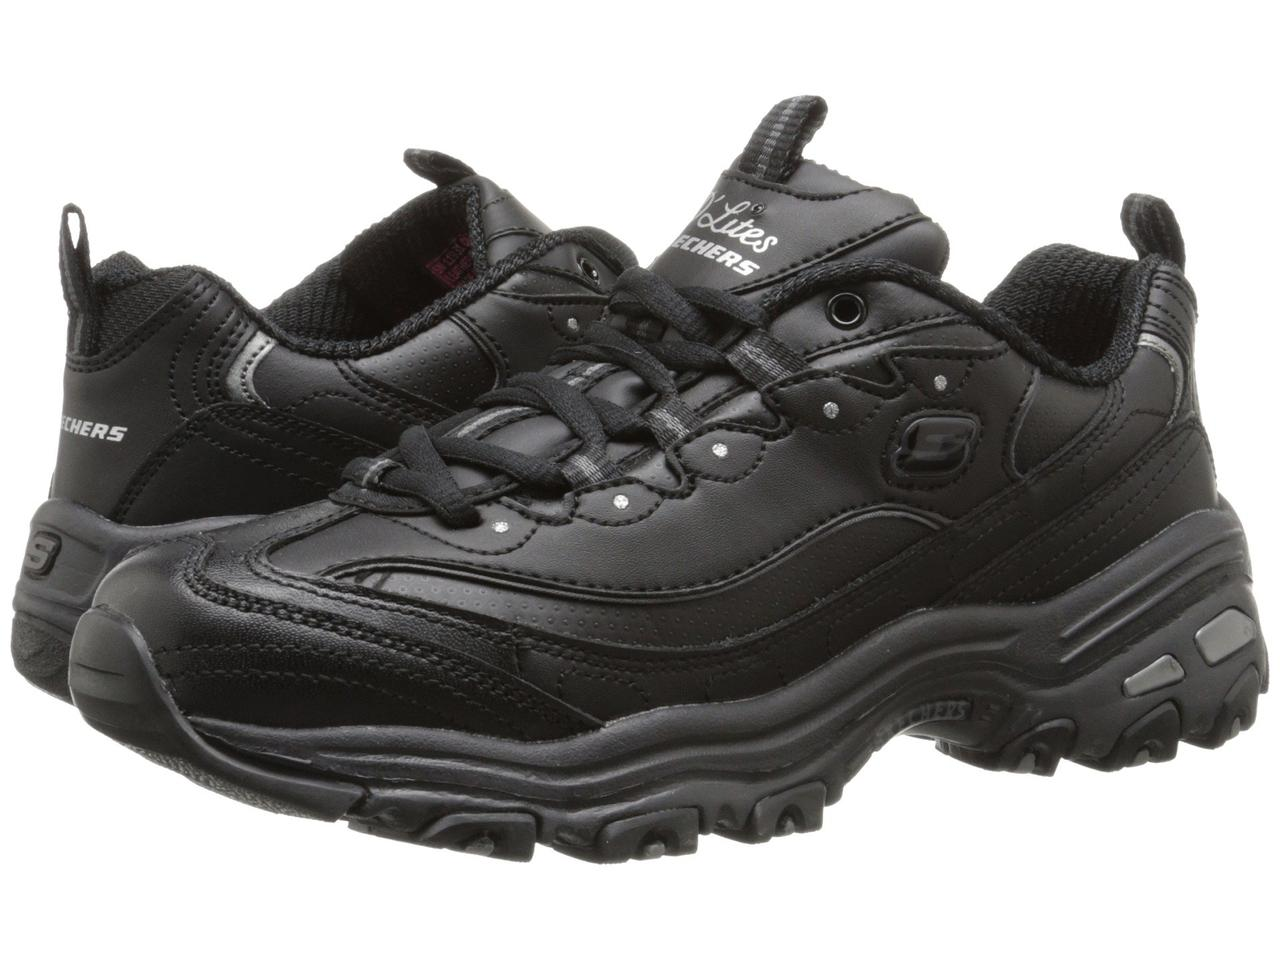 eb430e16b70 Кроссовки SKECHERS D Lites - Fresh Start Black - Оригинал — в ...